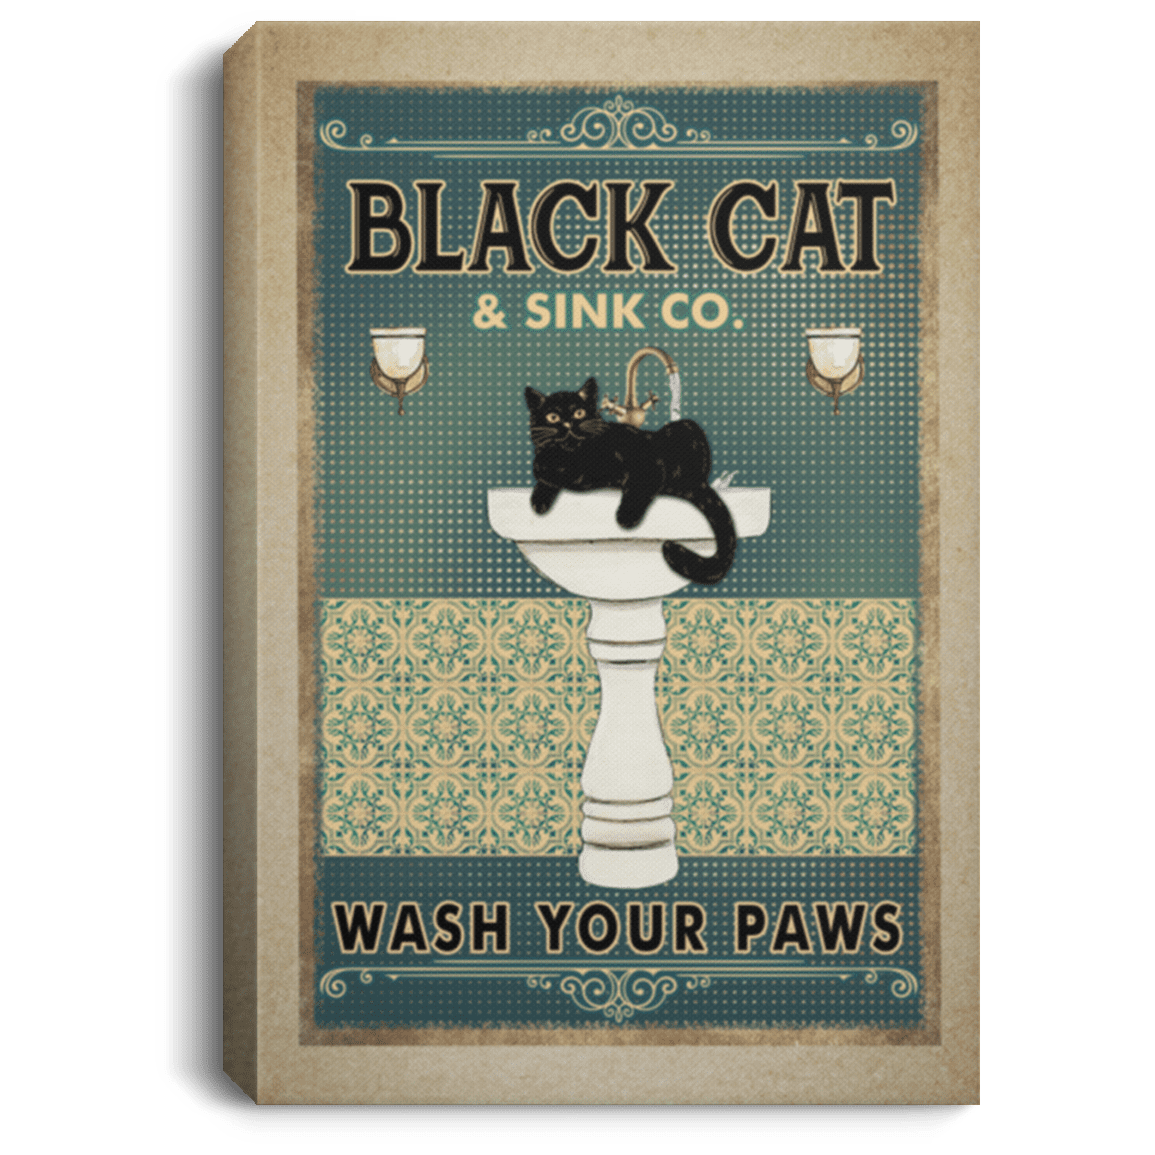 Black Cat Bathroom Decor Black Cat Wash Your Paws Gallery Wrapped Framed Canvas Cubebik